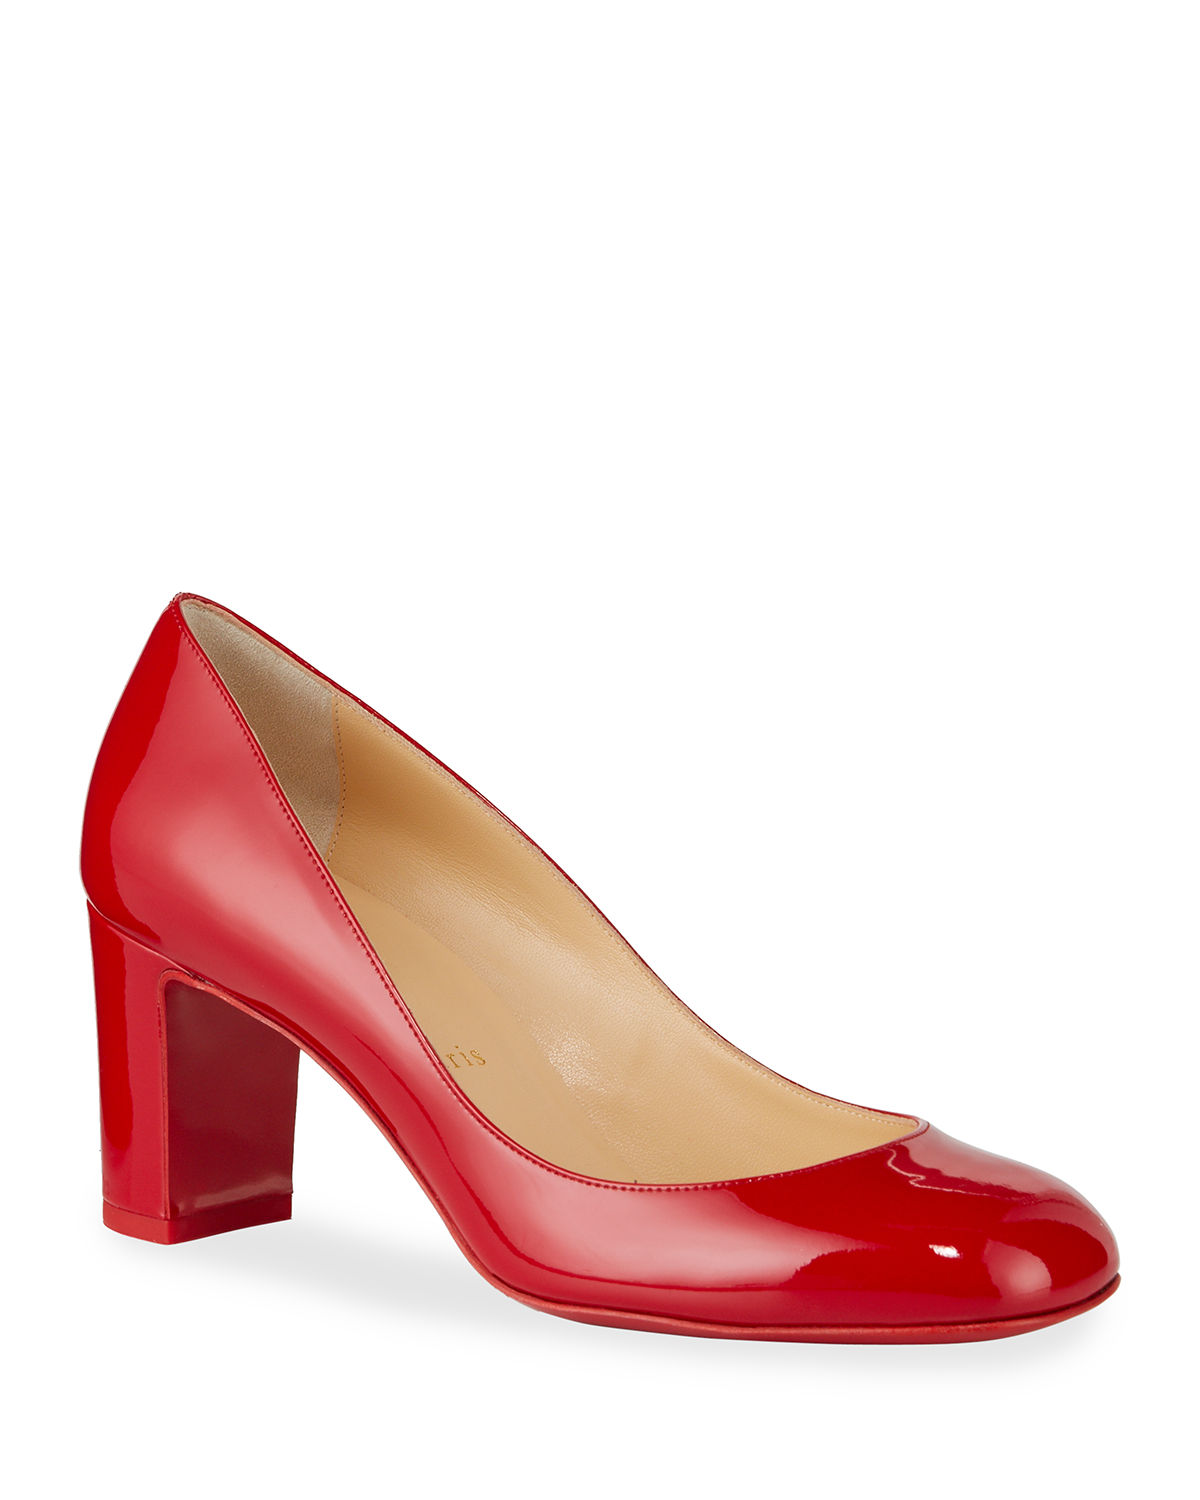 best service 95a57 cb71a Cadrilla Patent Block-Heel Red Sole Pump